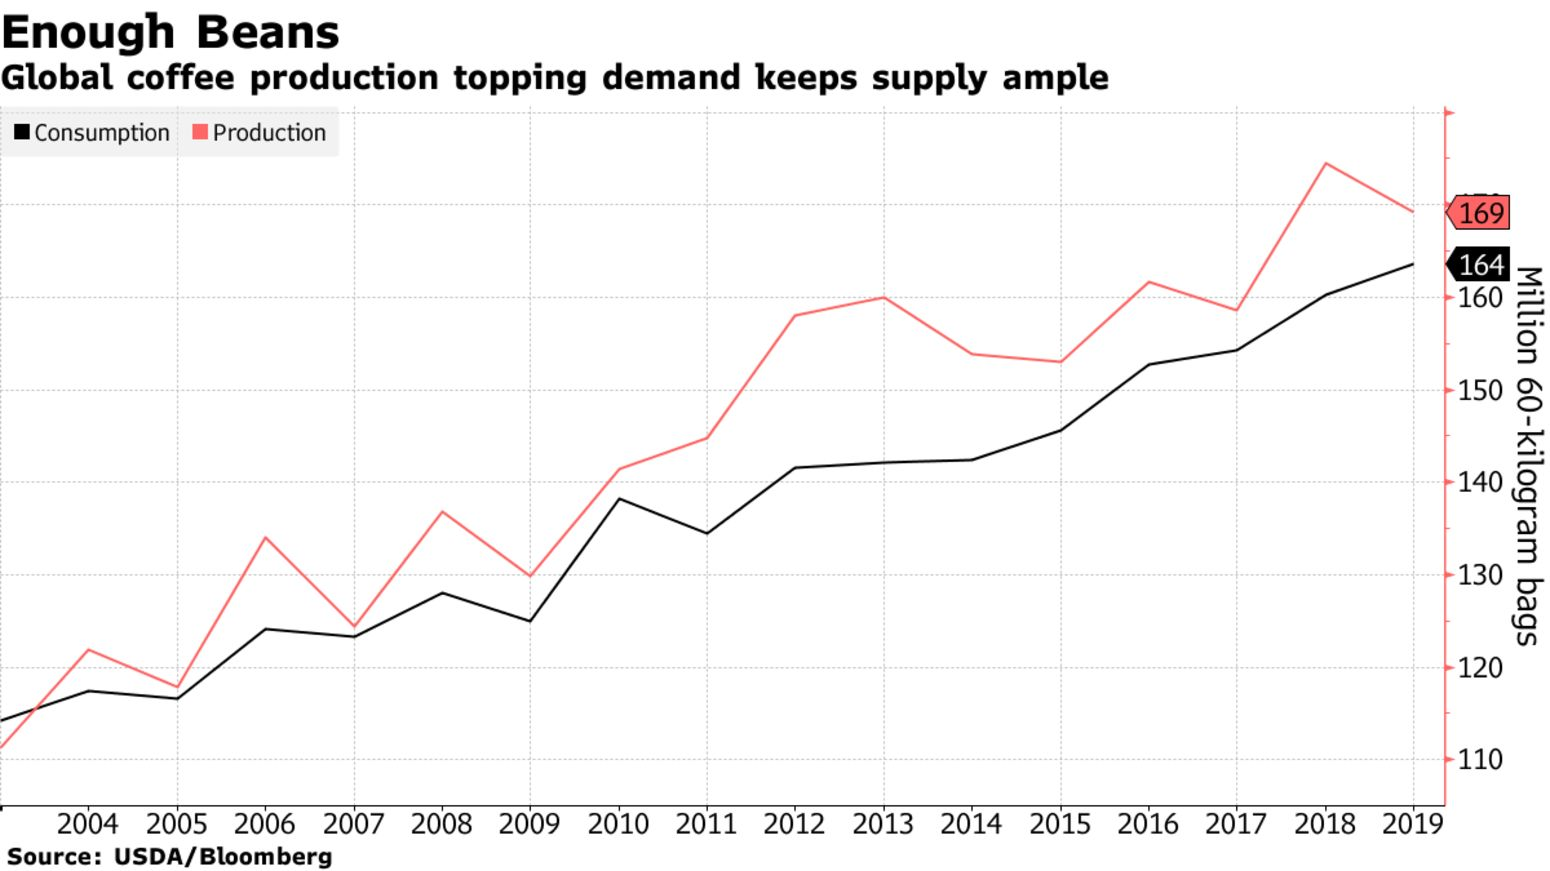 Global coffee production topping demand keeps supply ample